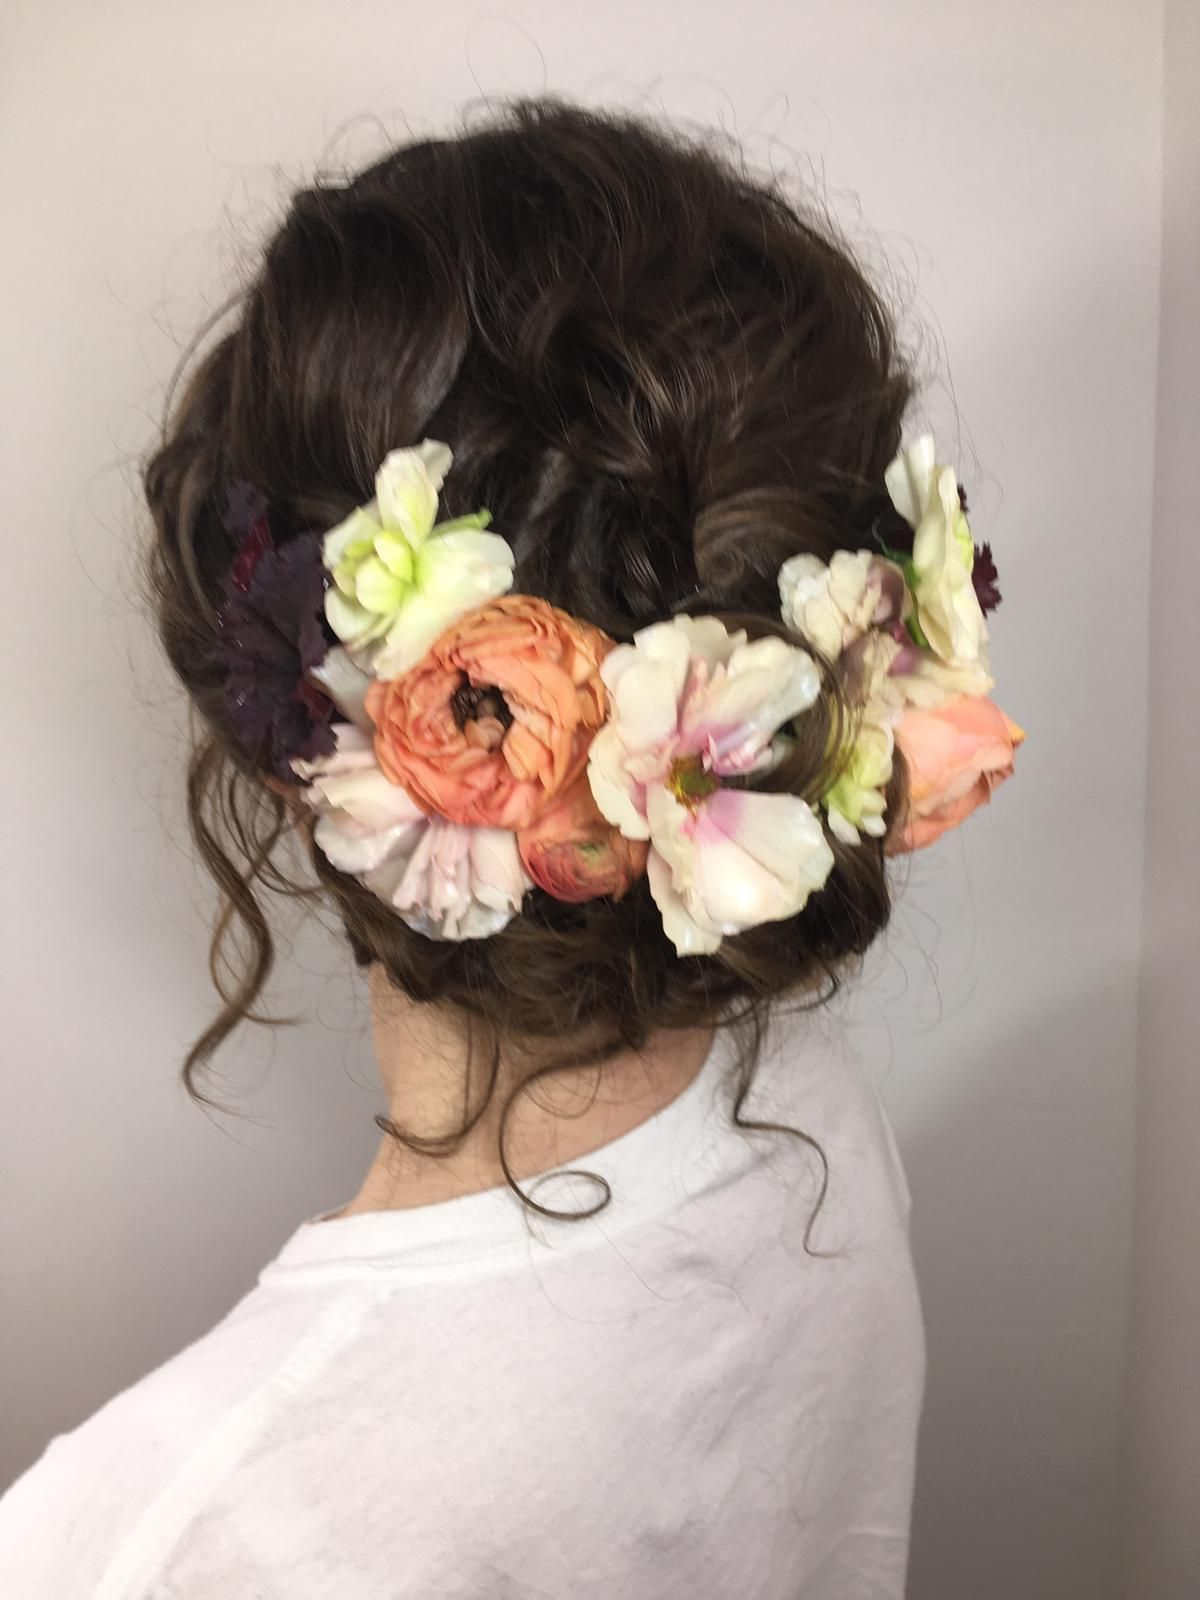 Spring hair flower inspiration by Carolanne Armstrong